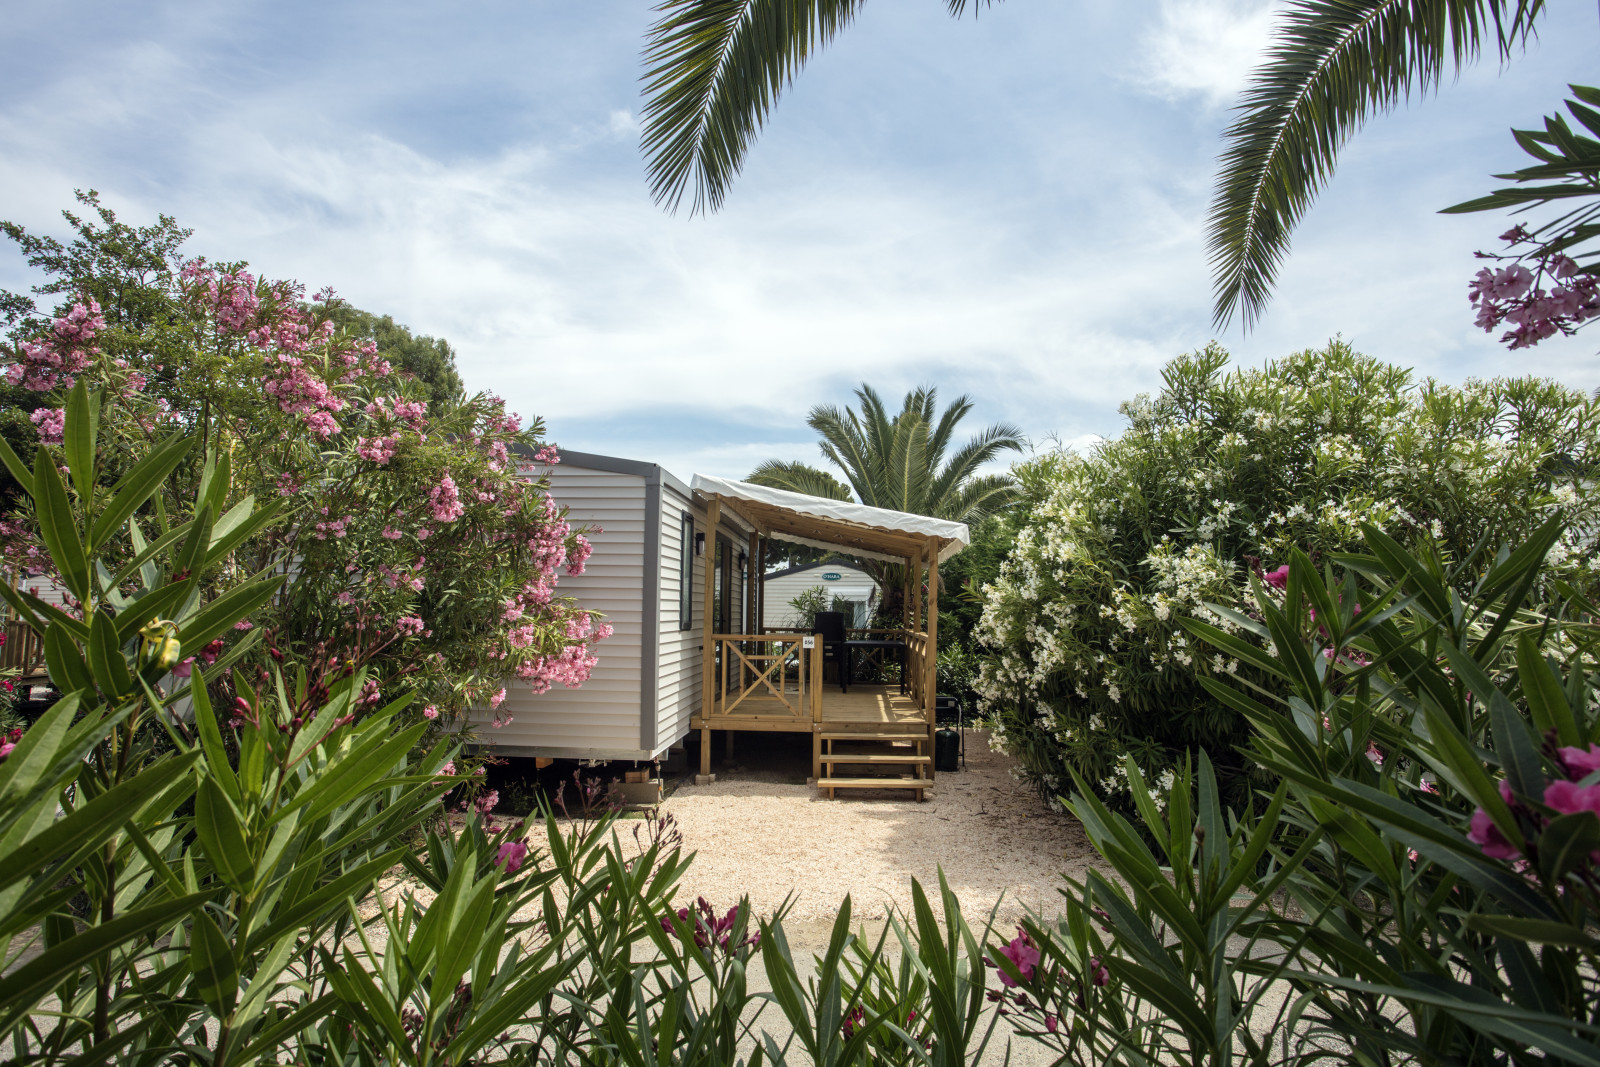 Emplacement mobil home